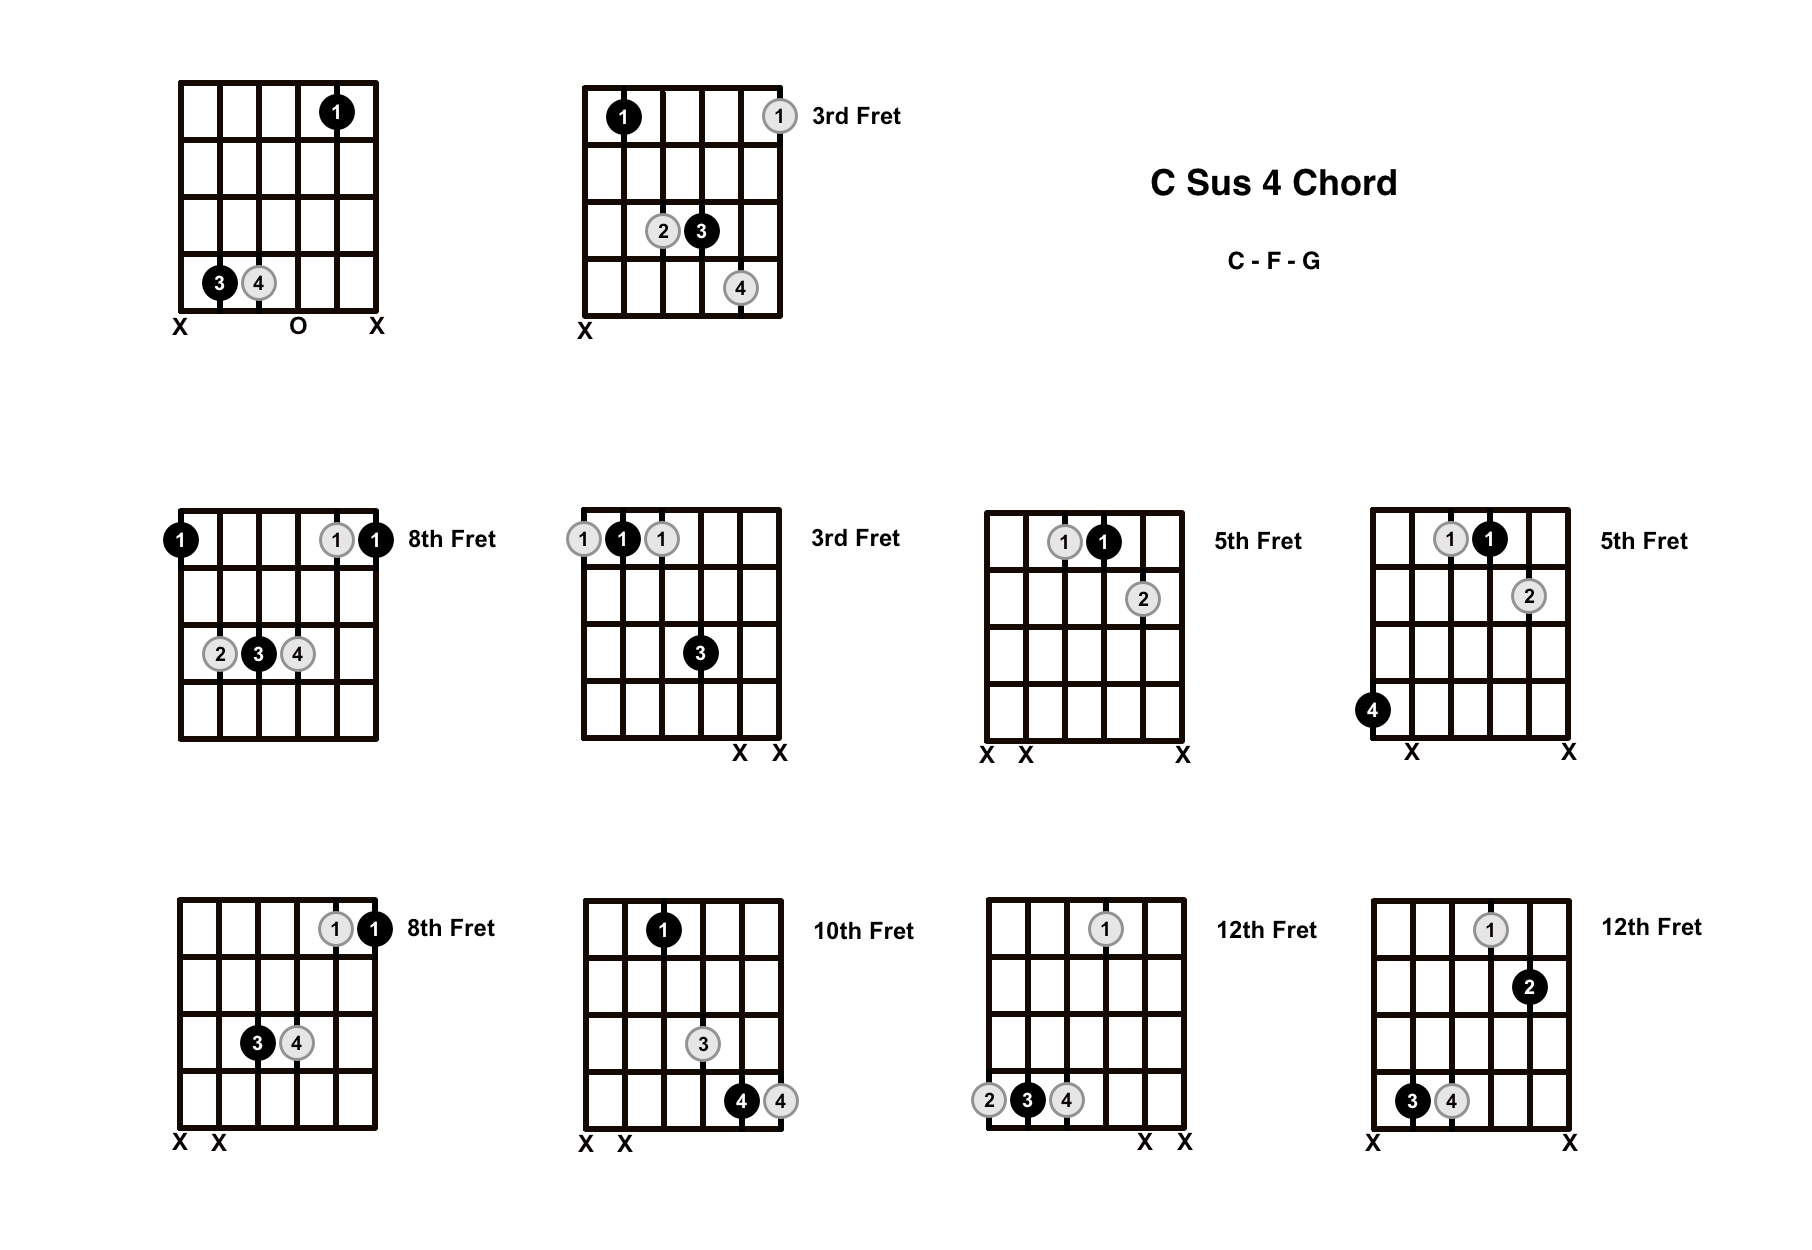 C Sus 4 Chord On The Guitar (C Suspended 4) – Diagrams, Finger Positions and Theory